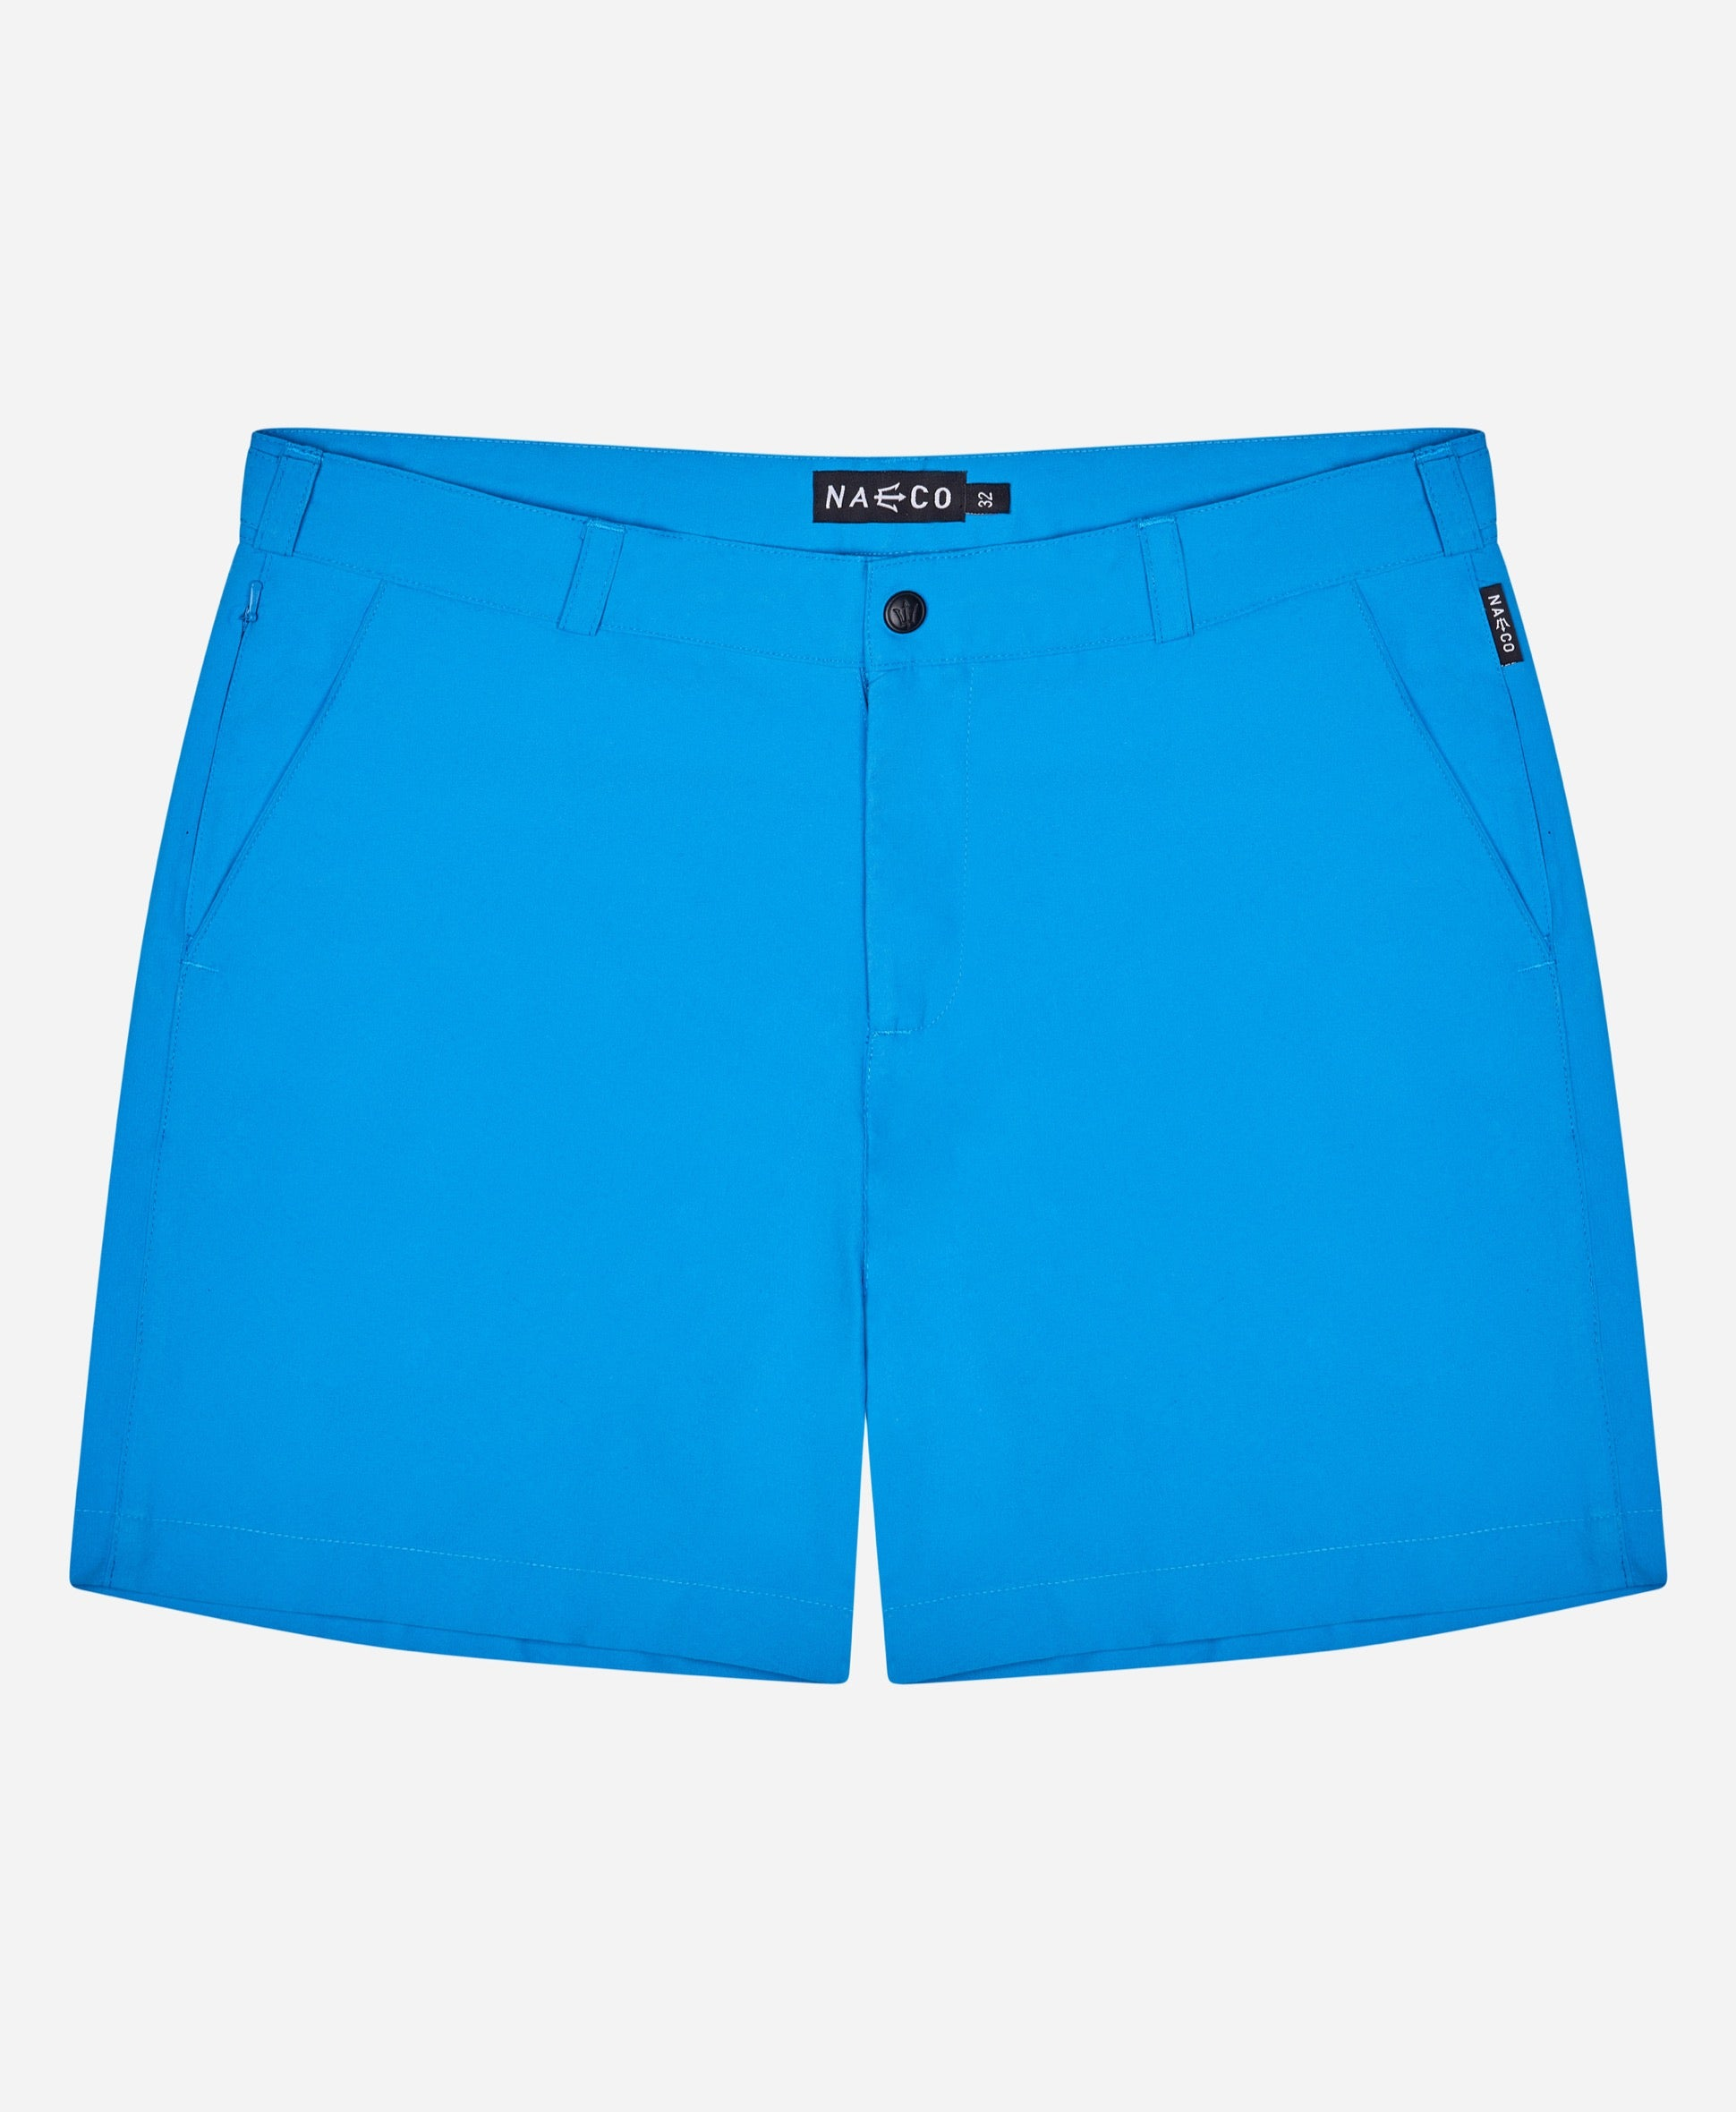 Lookbook Sea Blue Shorts